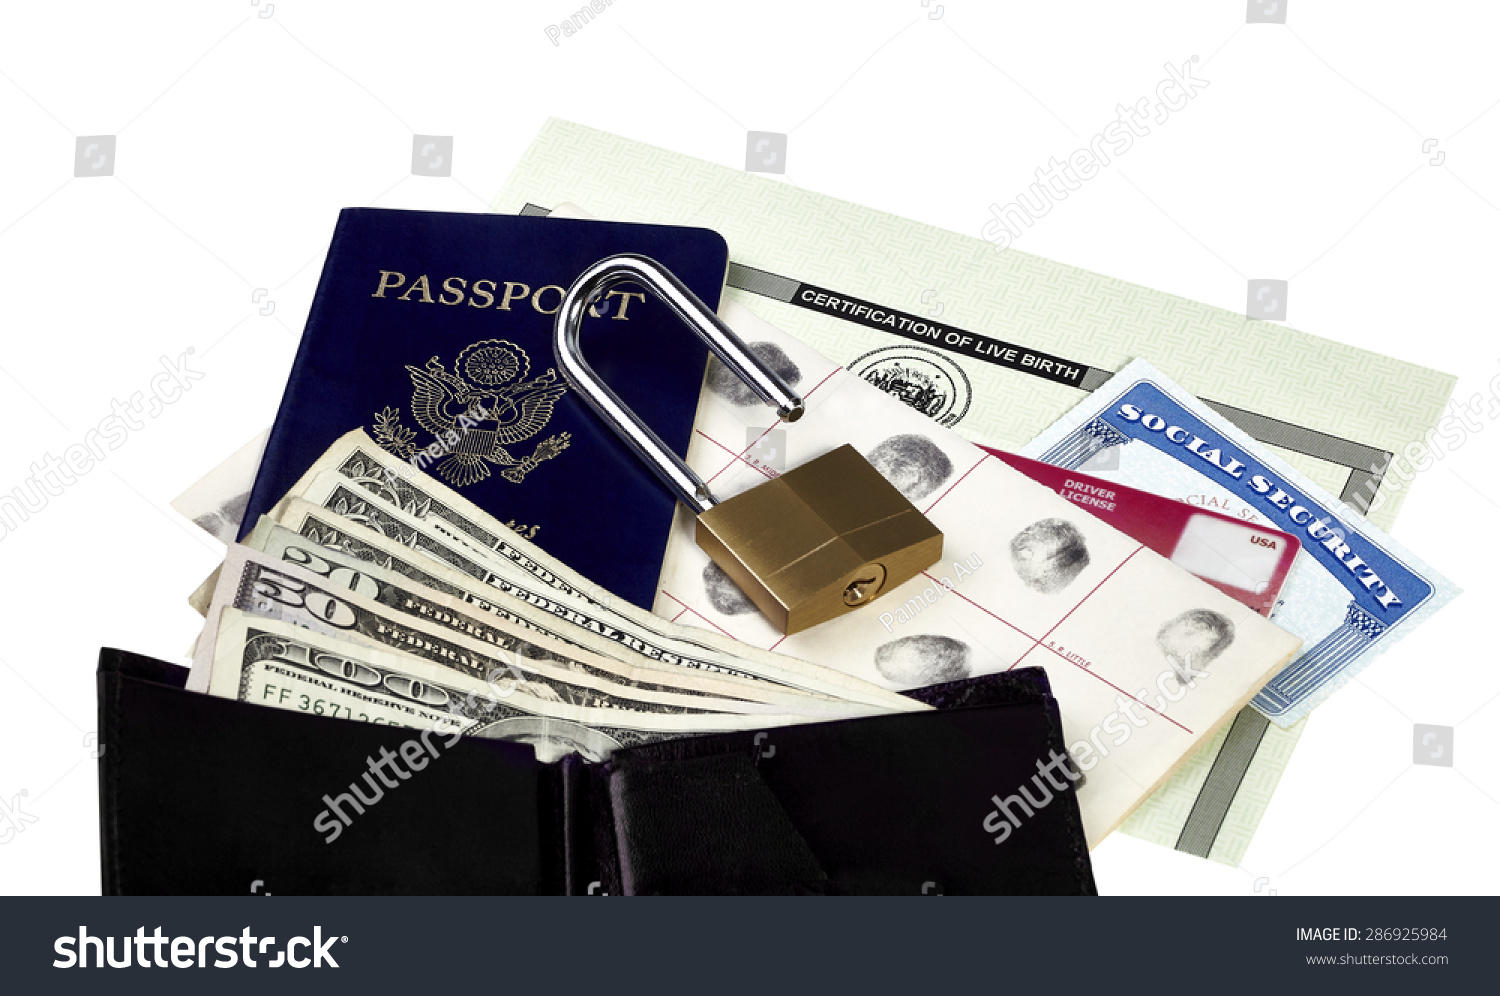 do you need social security card for drivers license